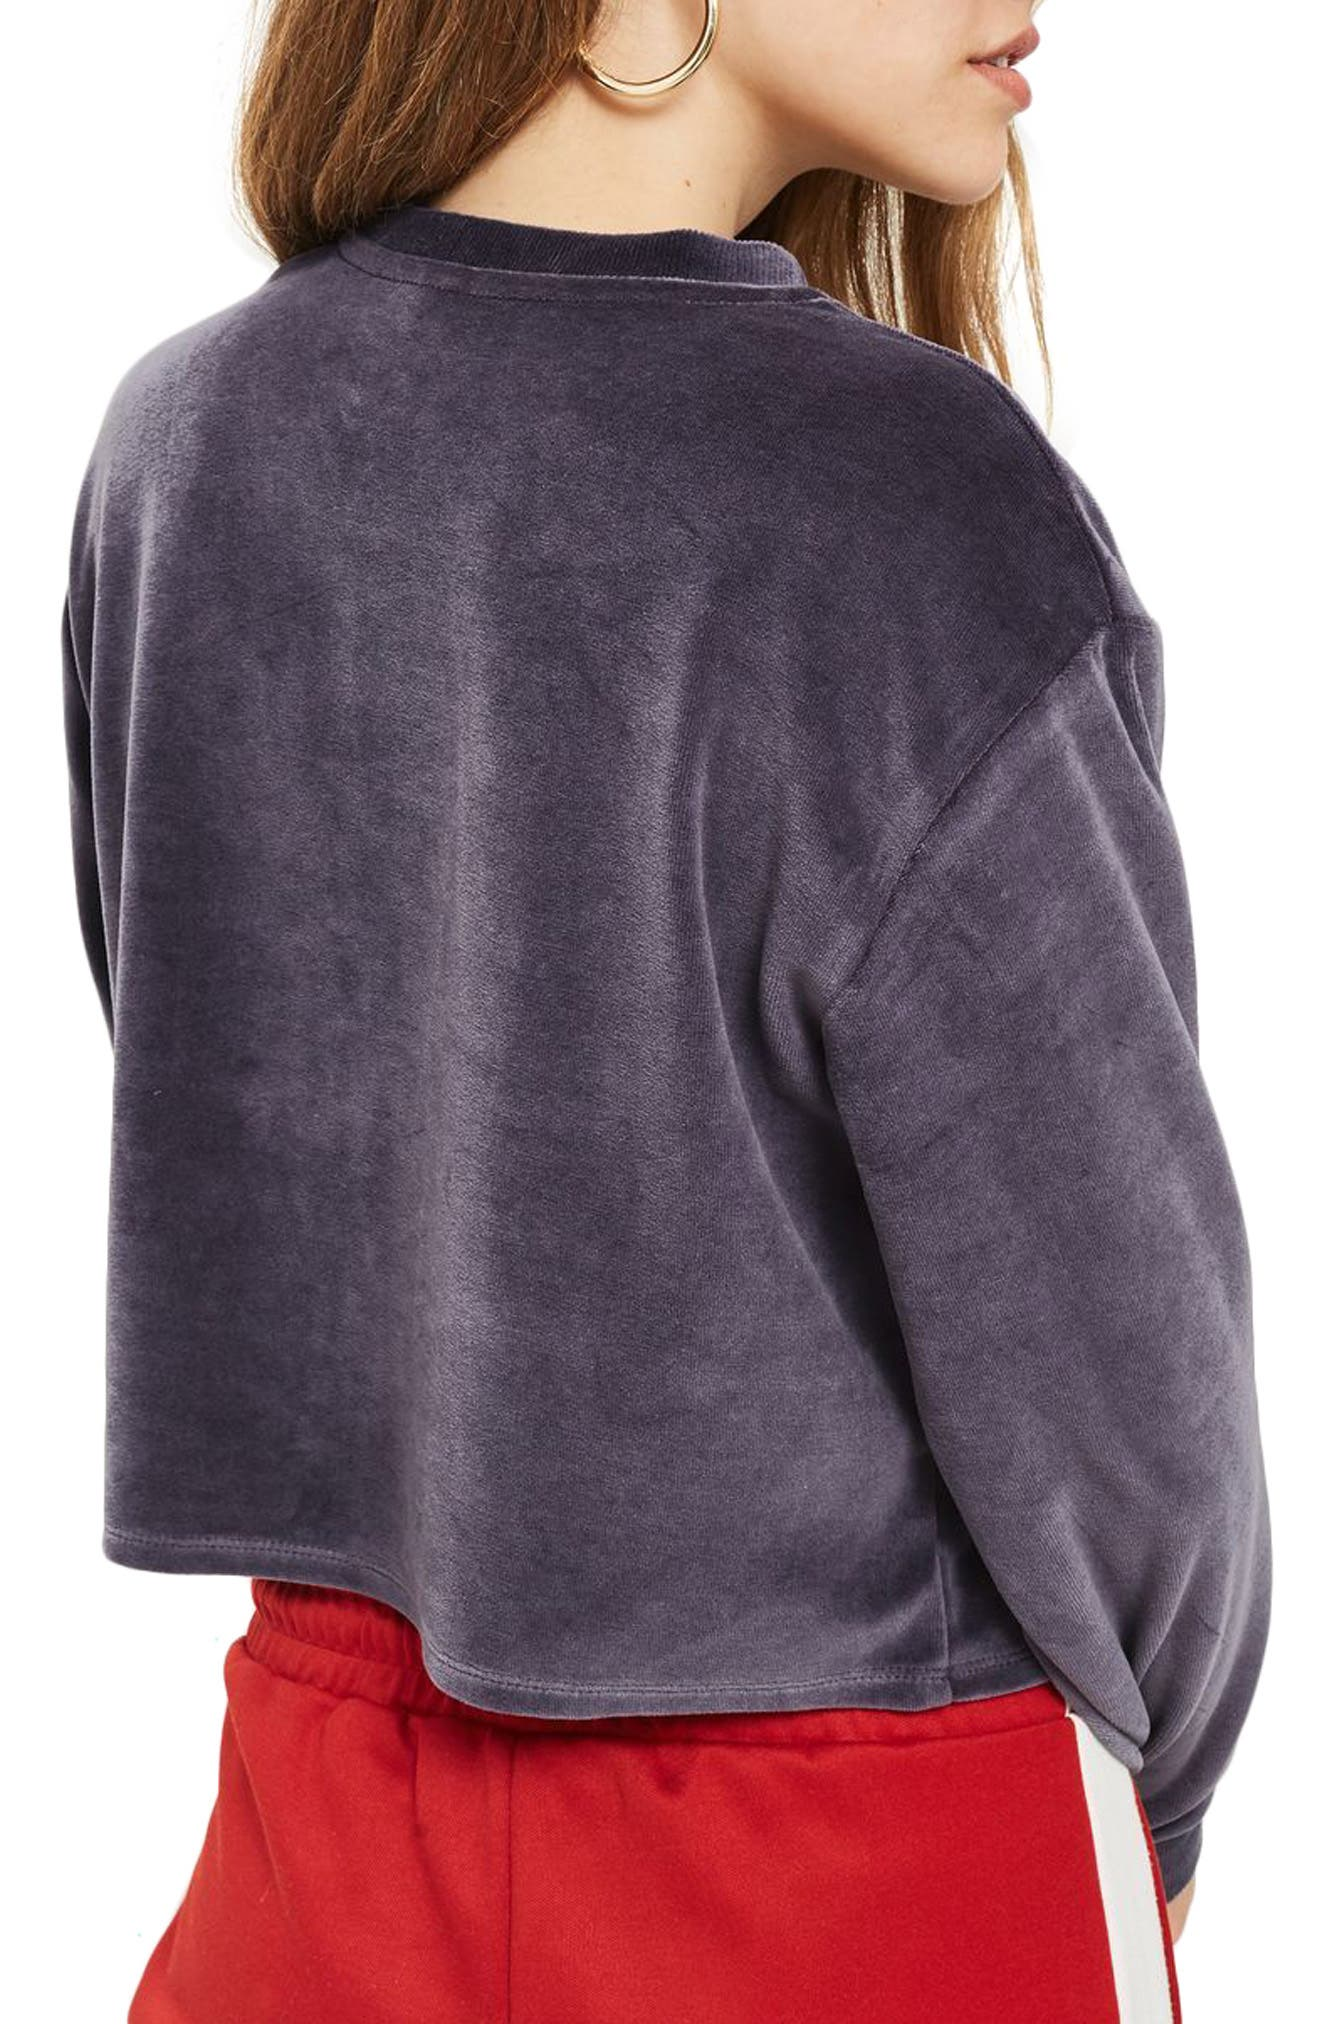 Embroidered Velour Crop Sweater,                             Alternate thumbnail 2, color,                             410